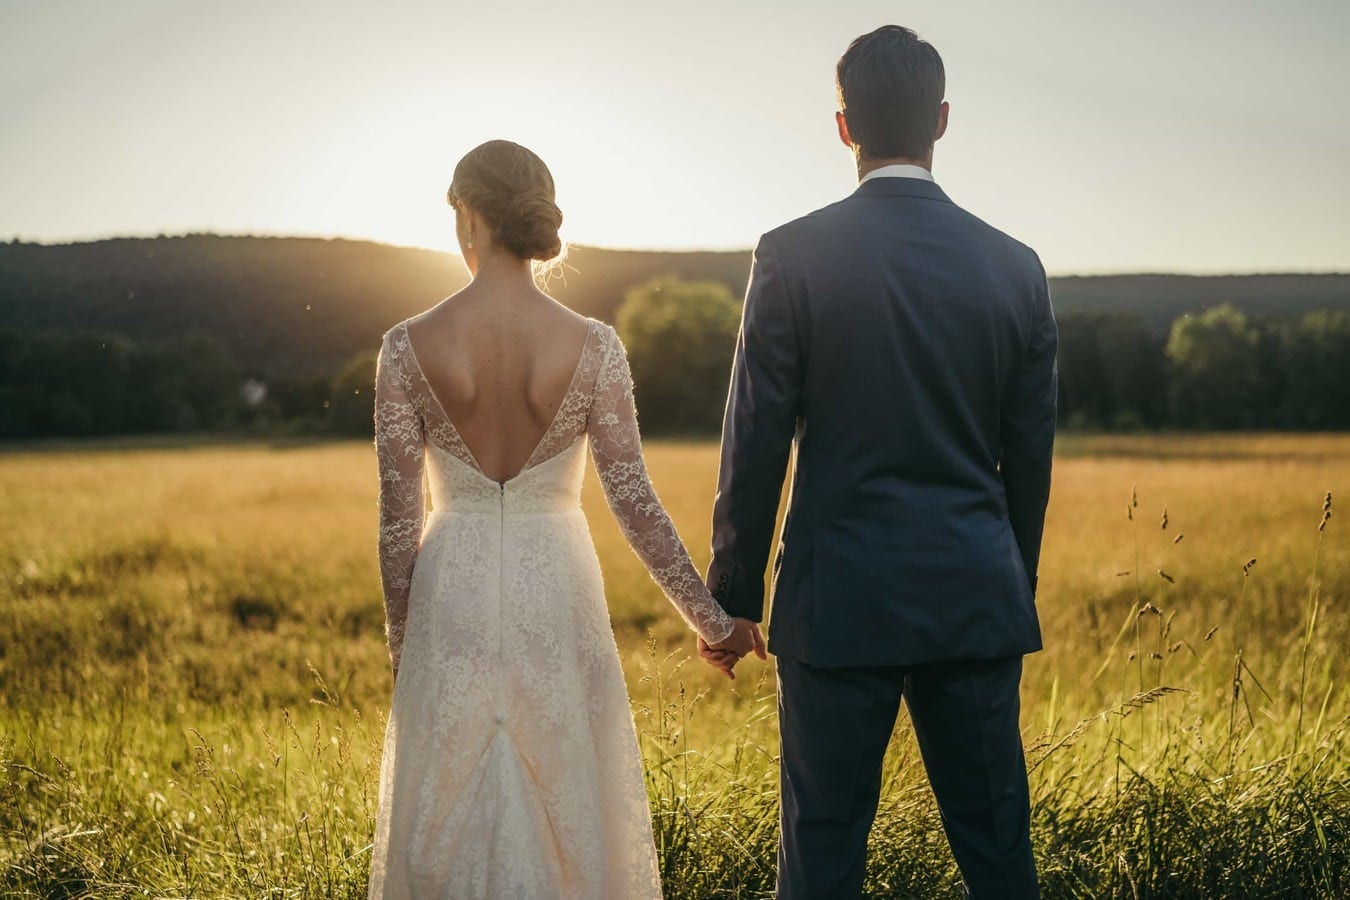 Bride and groom stand in field holding hands and sunset glows around bride's head in Catskills.